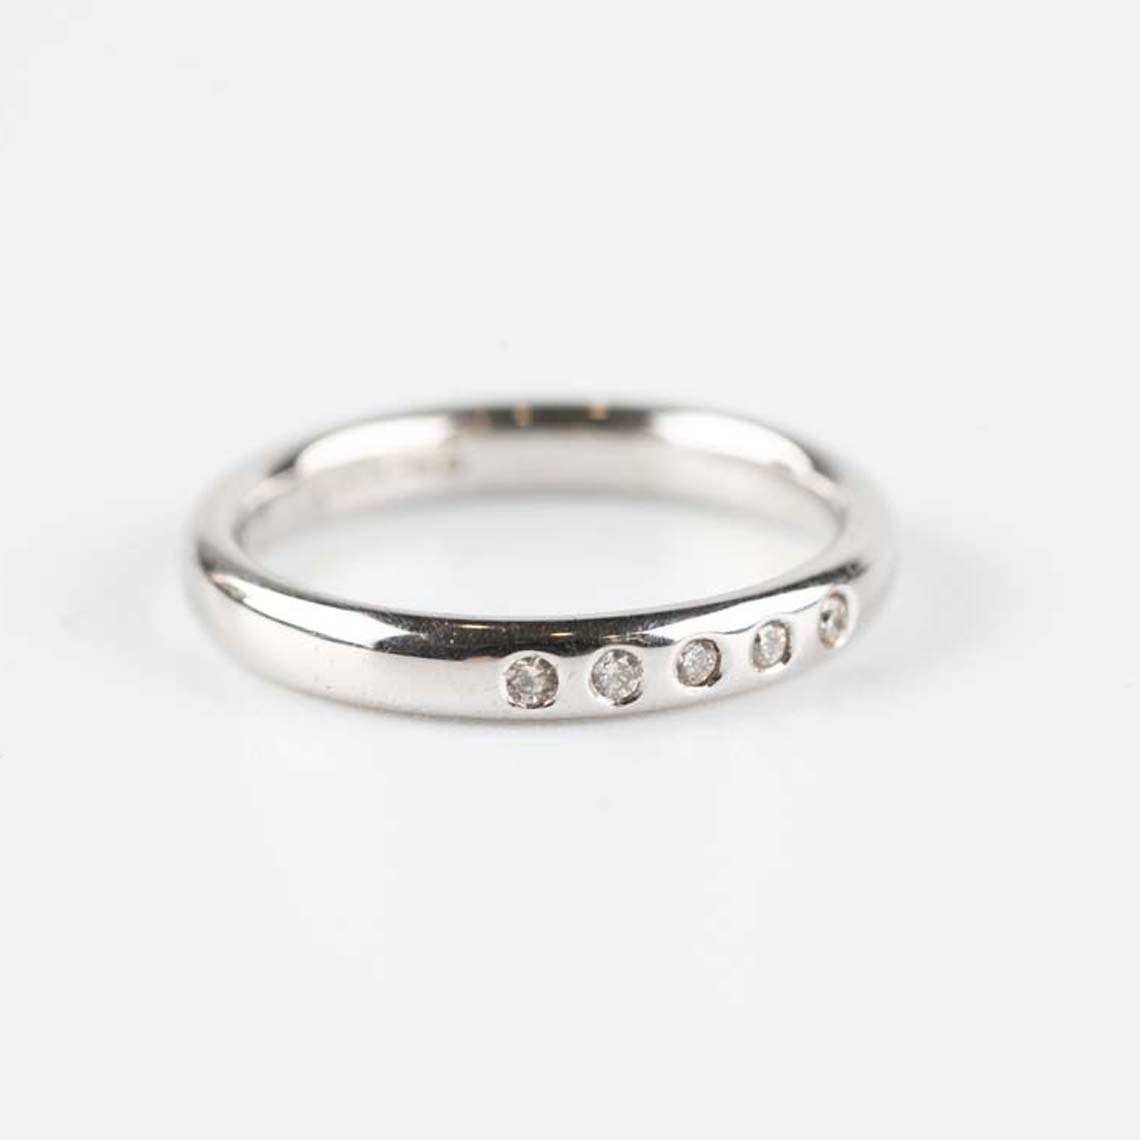 Wedding/eternity ring